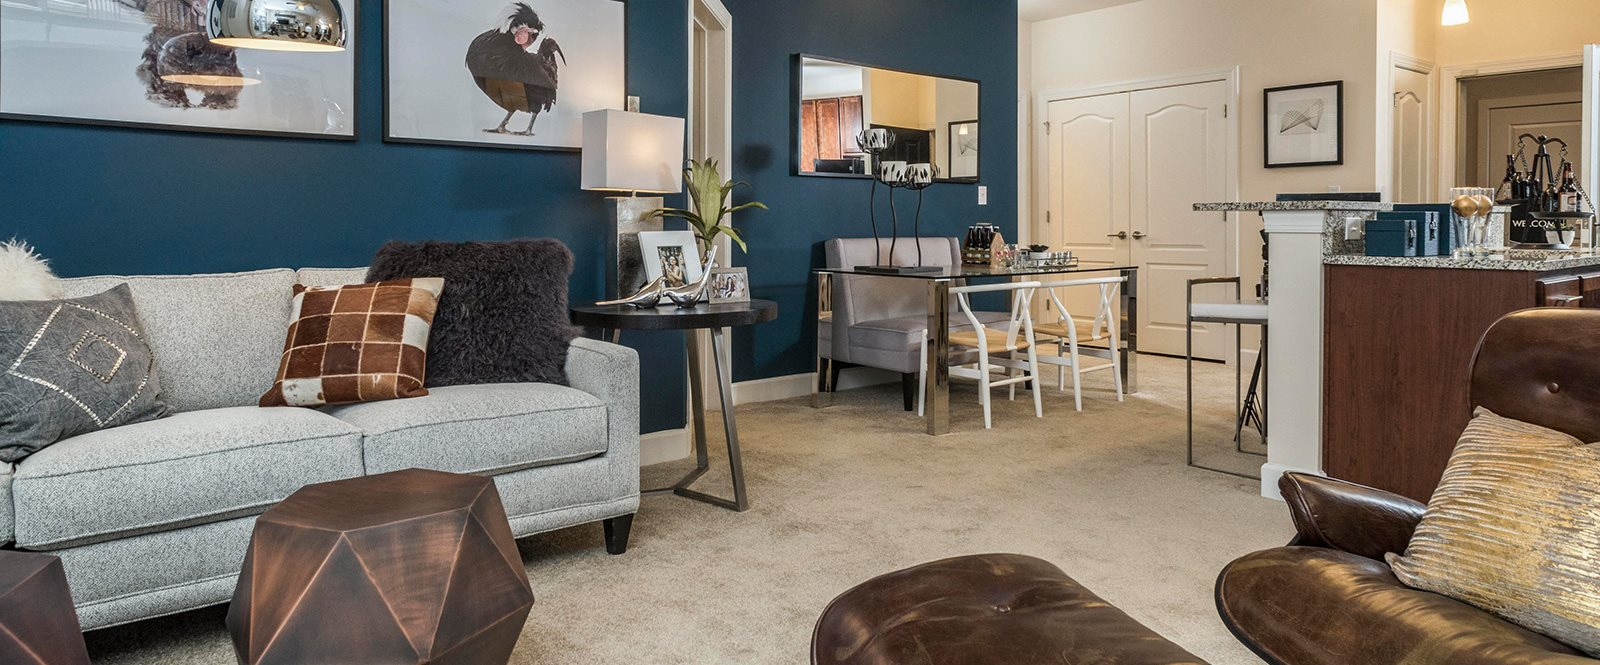 Sophisticated Apartment Living at Abberly at Southpoint Apartment Homes, Fredericksburg, Virginia